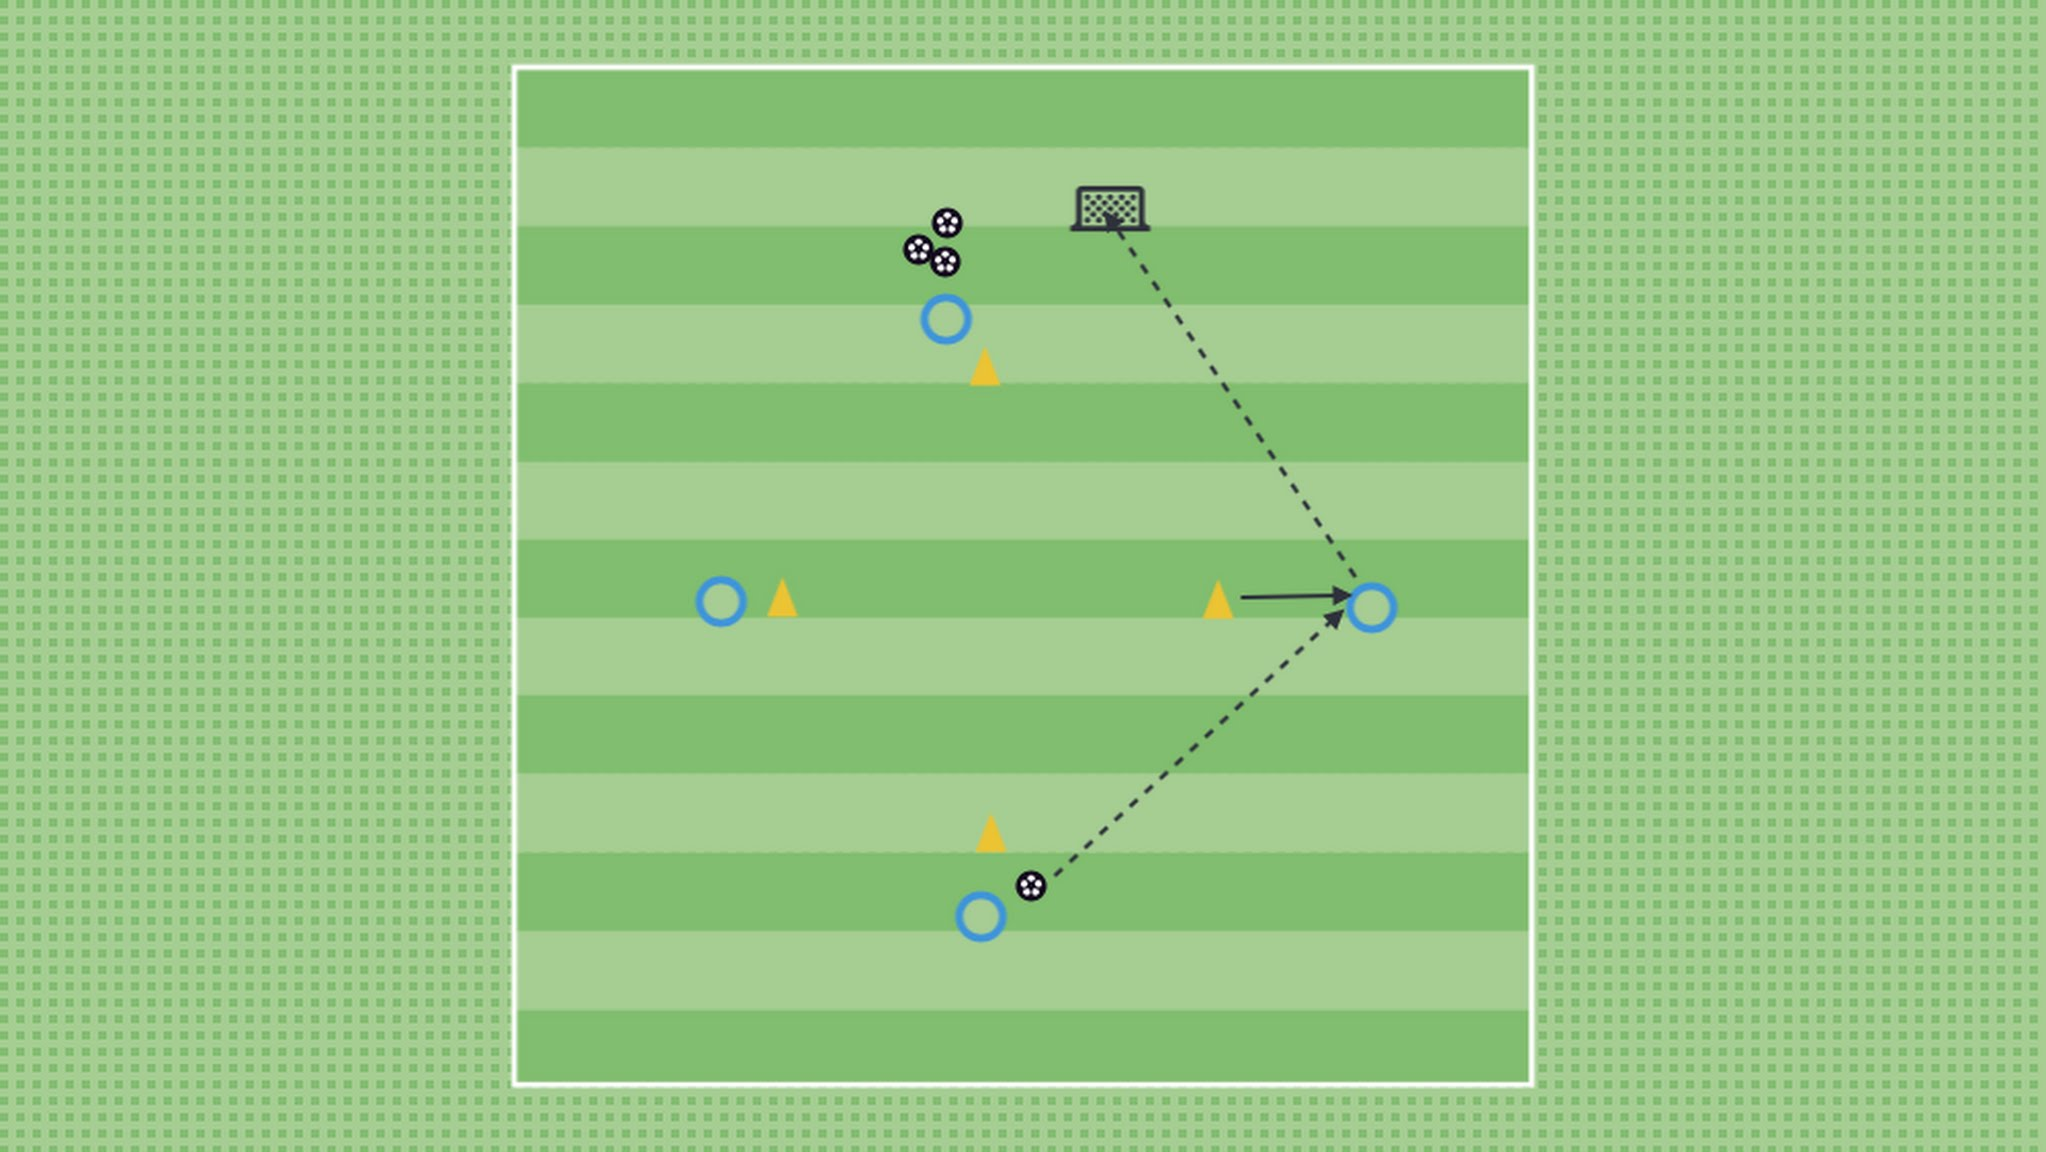 In the example above the receiving player is required to receive on the back foot and strike into the goal with the same foot. While this is good repetition for a striker to break the line and get a shot on goal, after a while this may become tedious. Some players may start to take things into their own hands and find new solutions. (e.g.flick the ball with their front foot, spin and then finish with their back foot)